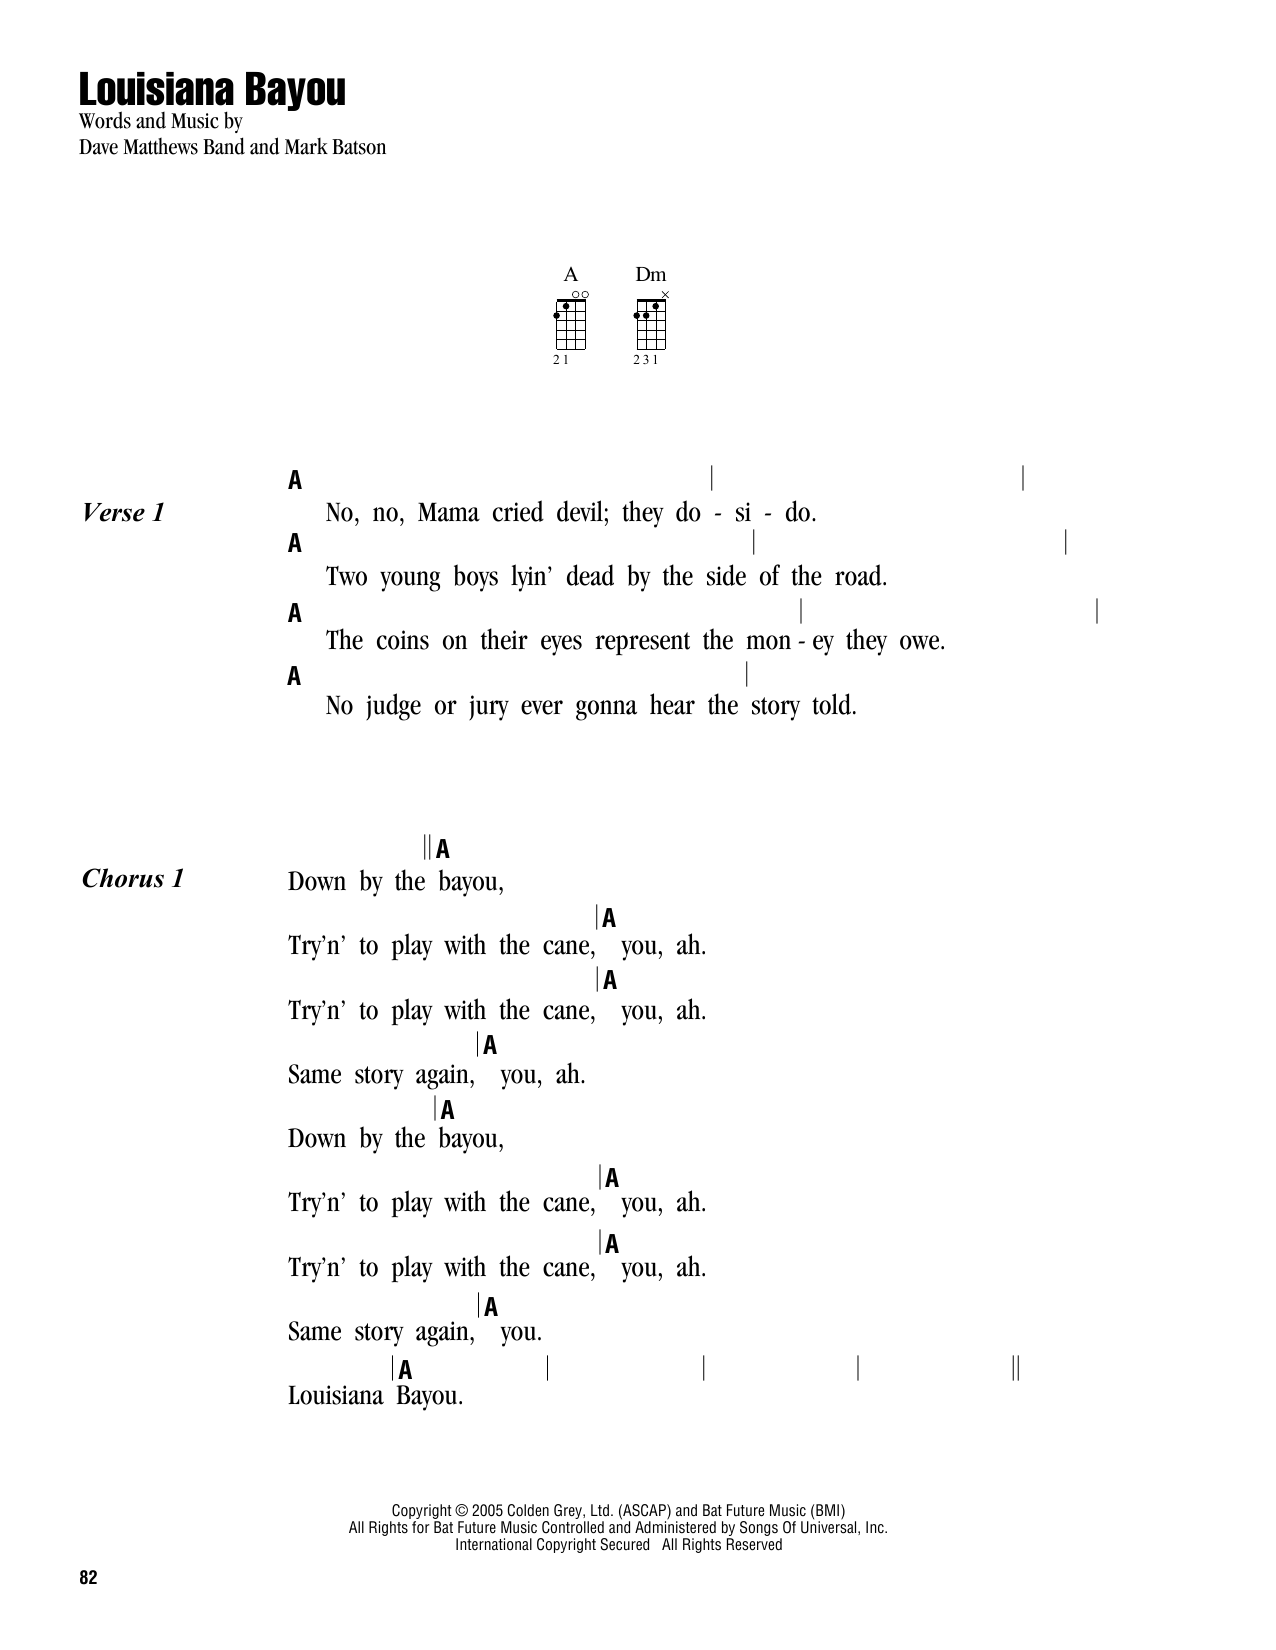 Tablature guitare Louisiana Bayou de Dave Matthews Band - Ukulele (strumming patterns)